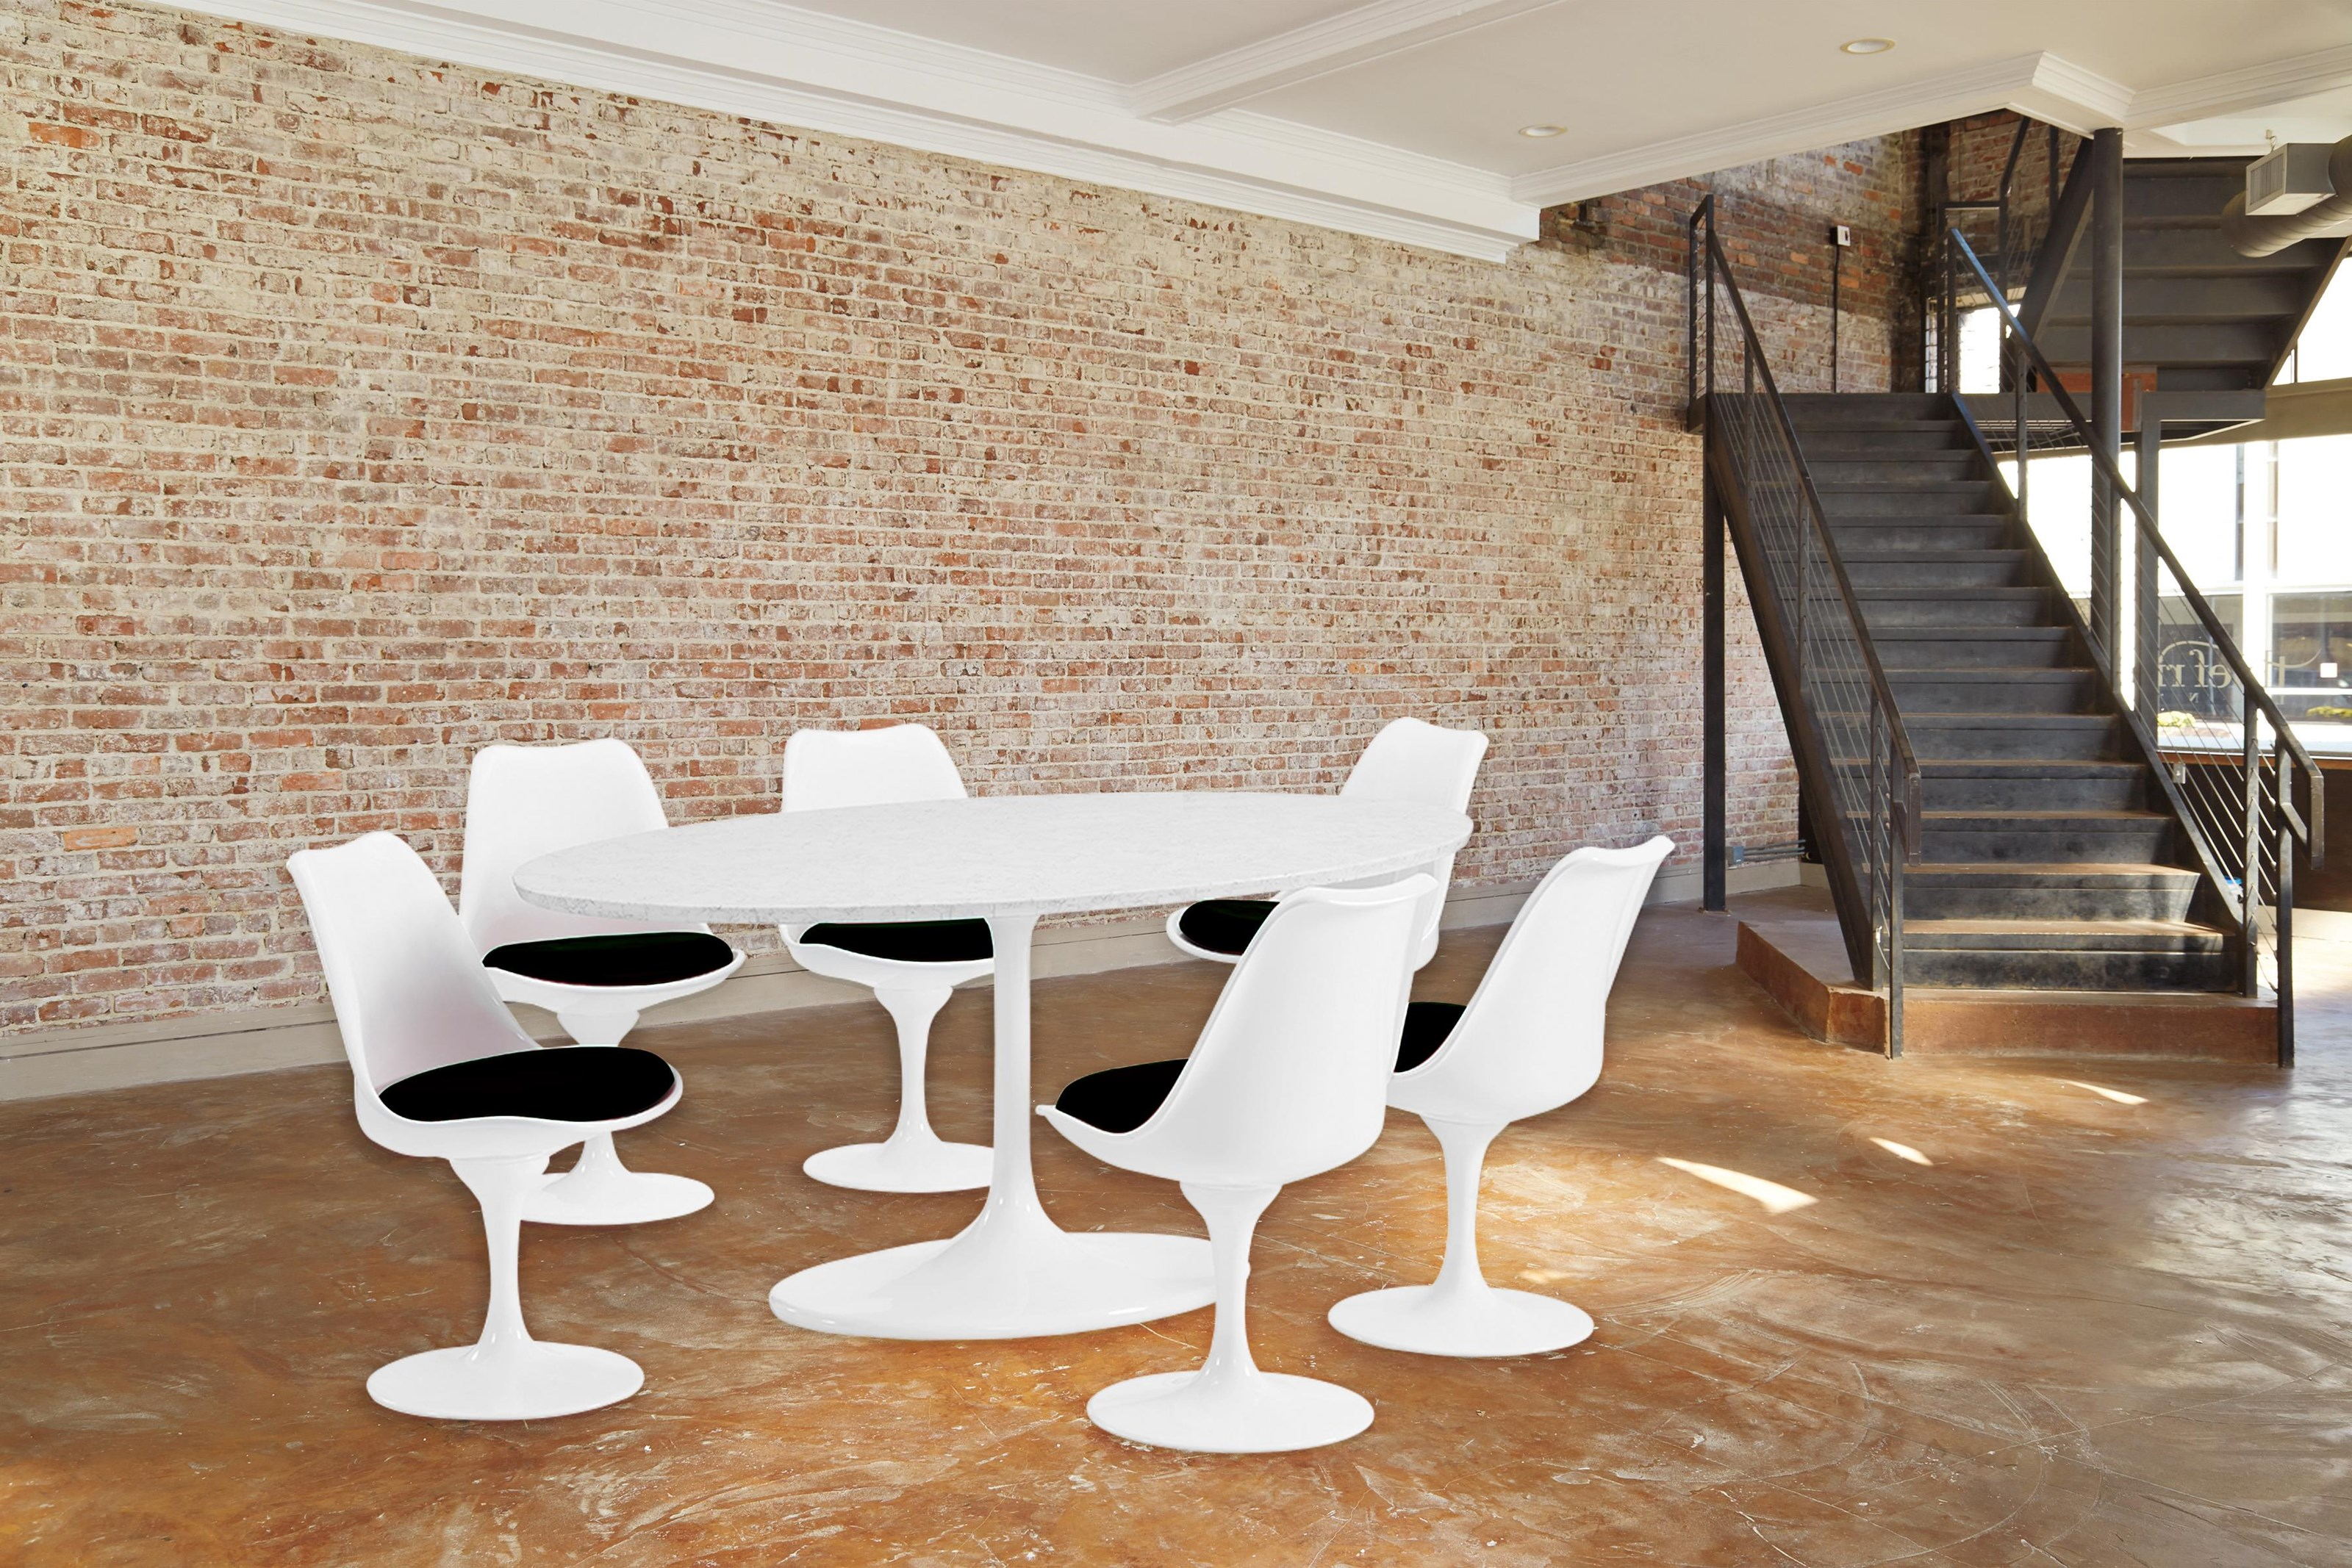 7 Piece Dining Group in Black